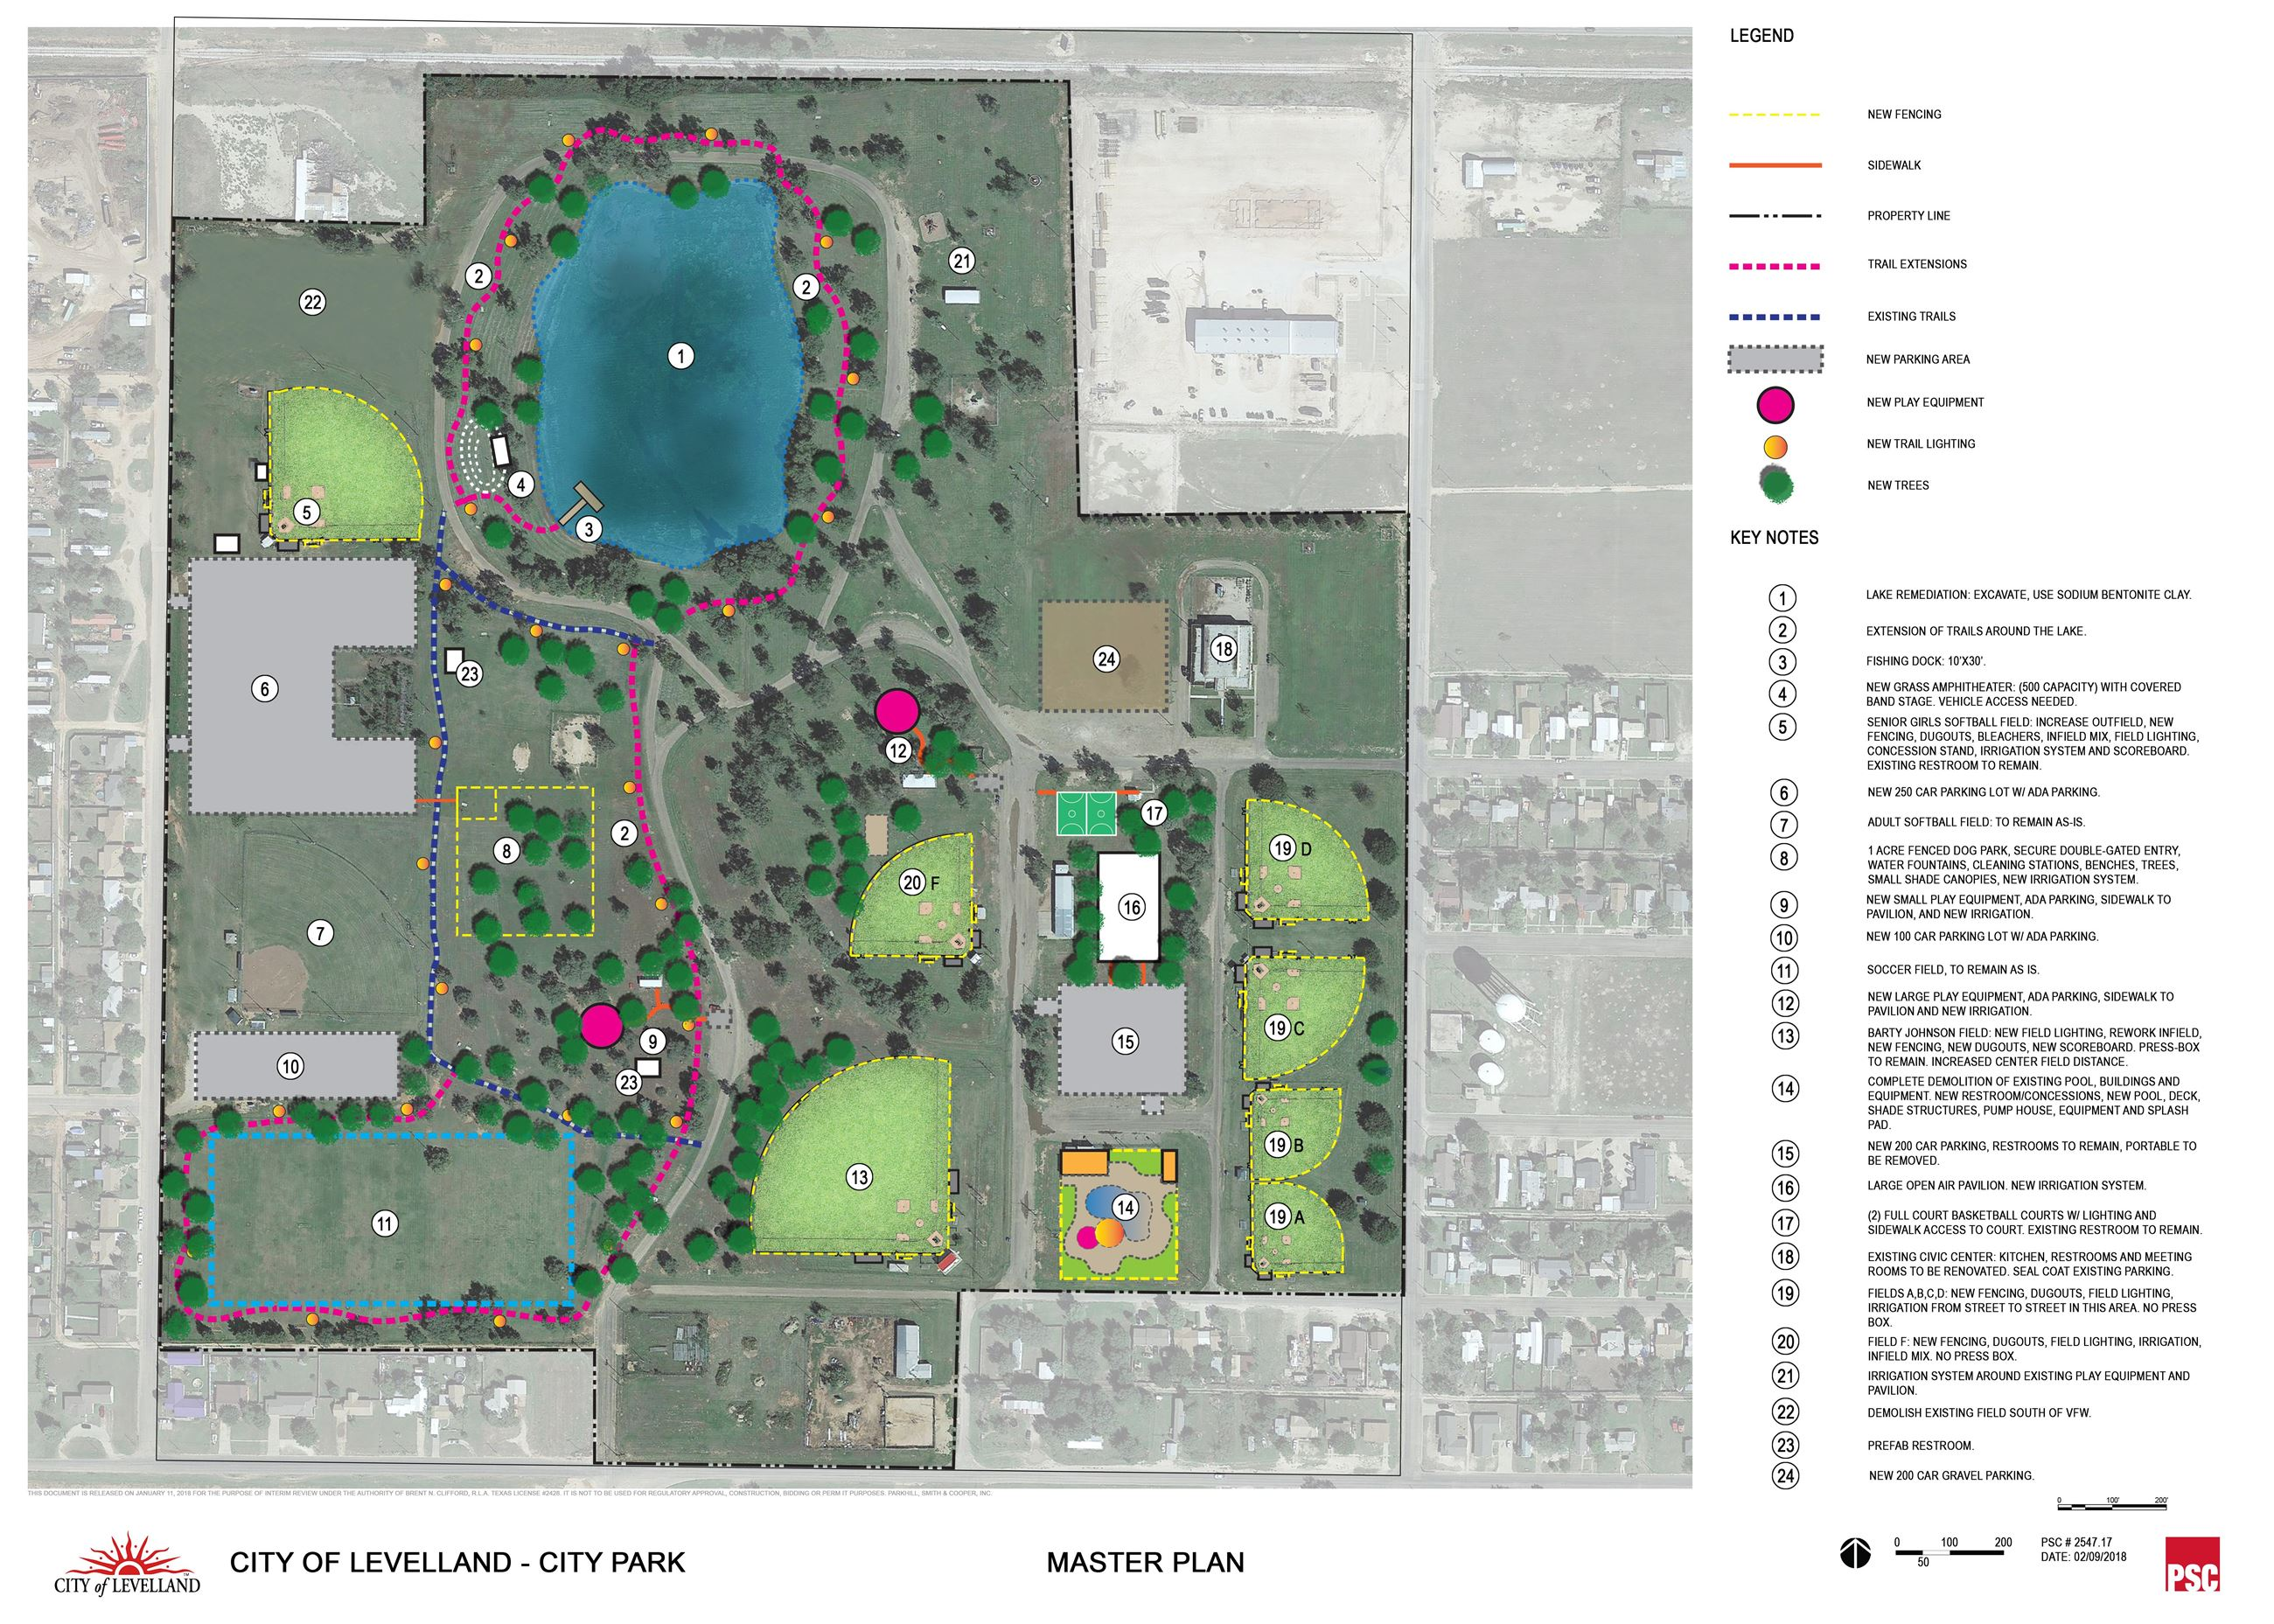 2018.02.09 Levelland City Park Master Plan